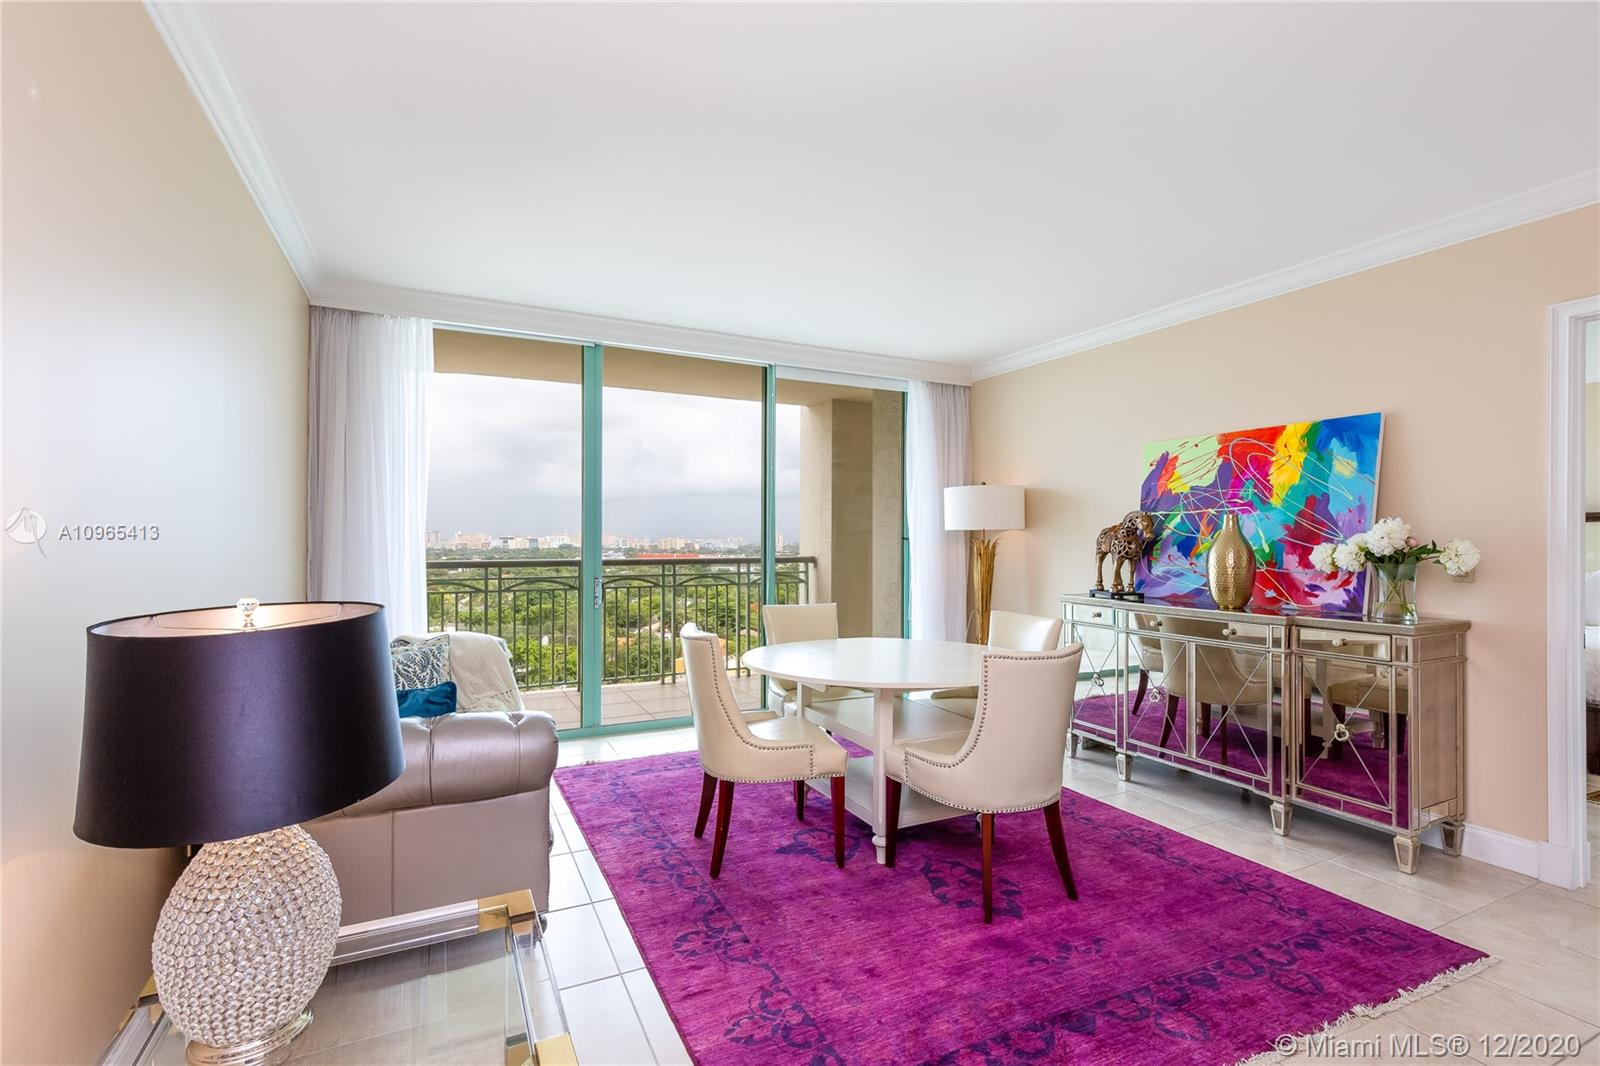 This magnificent one bedroom residence is the setting for Coconut Grove's most extraordinary lifestyle & sophisticated array of amenities. Spacious layout, splendid finishes, oversized master bath with jacuzzi & separate glass enclosed shower. 12th floor is the absolute perfect height in the building with a straight on view of Coconut Grove & downtown Coral Gables. High walkability factor